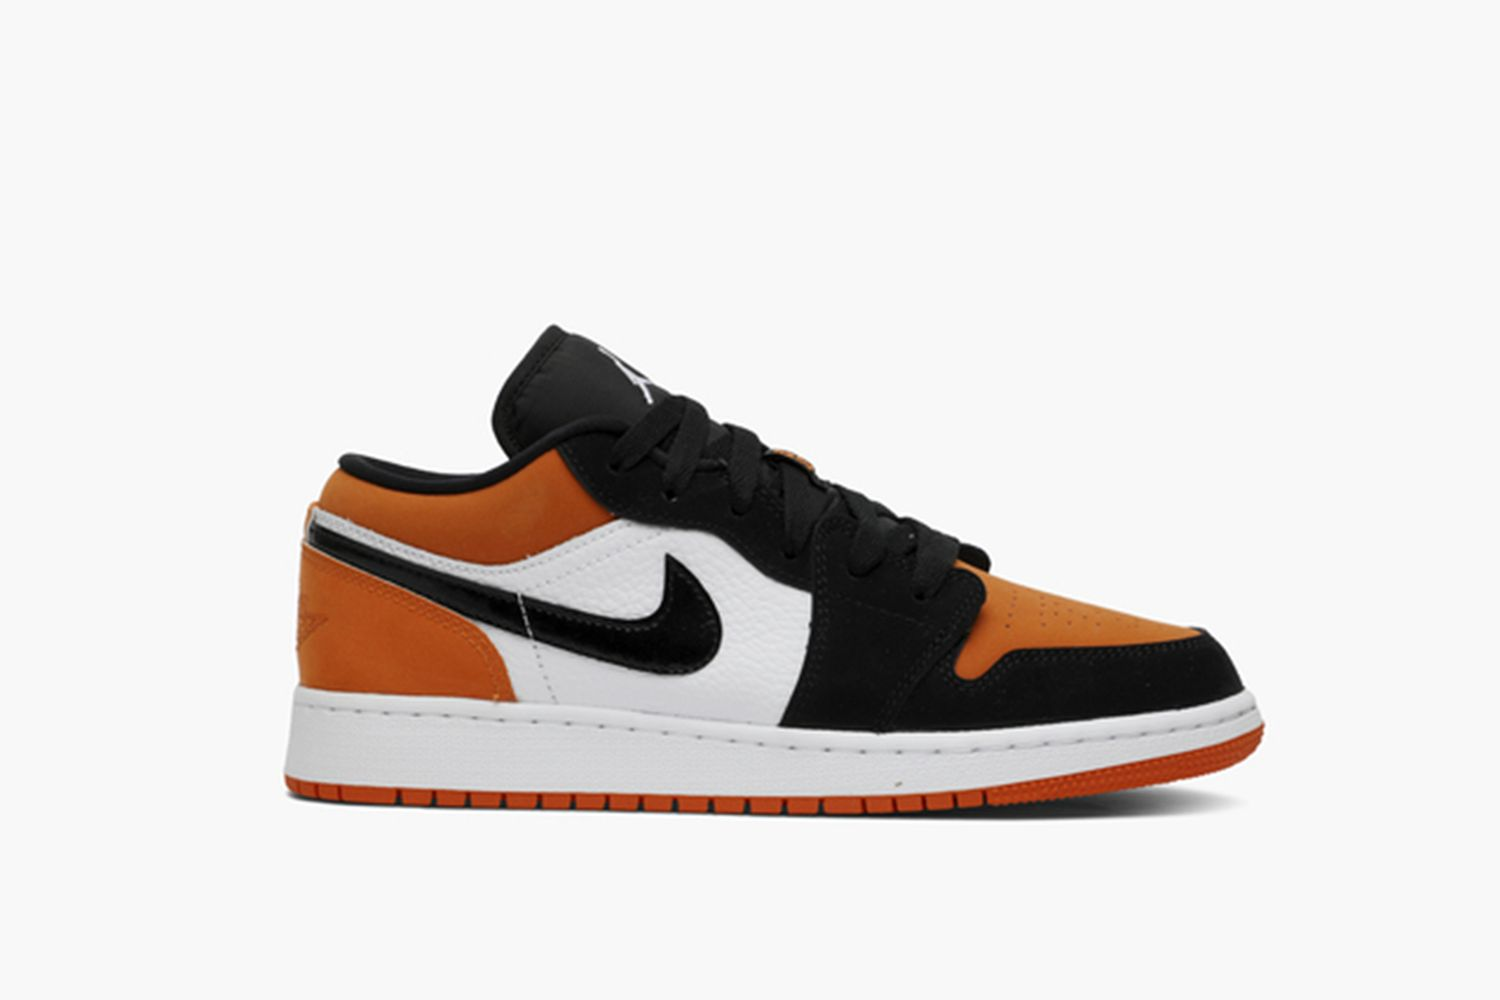 Air Jordan 1 Low GS 'Shattered Backboard'